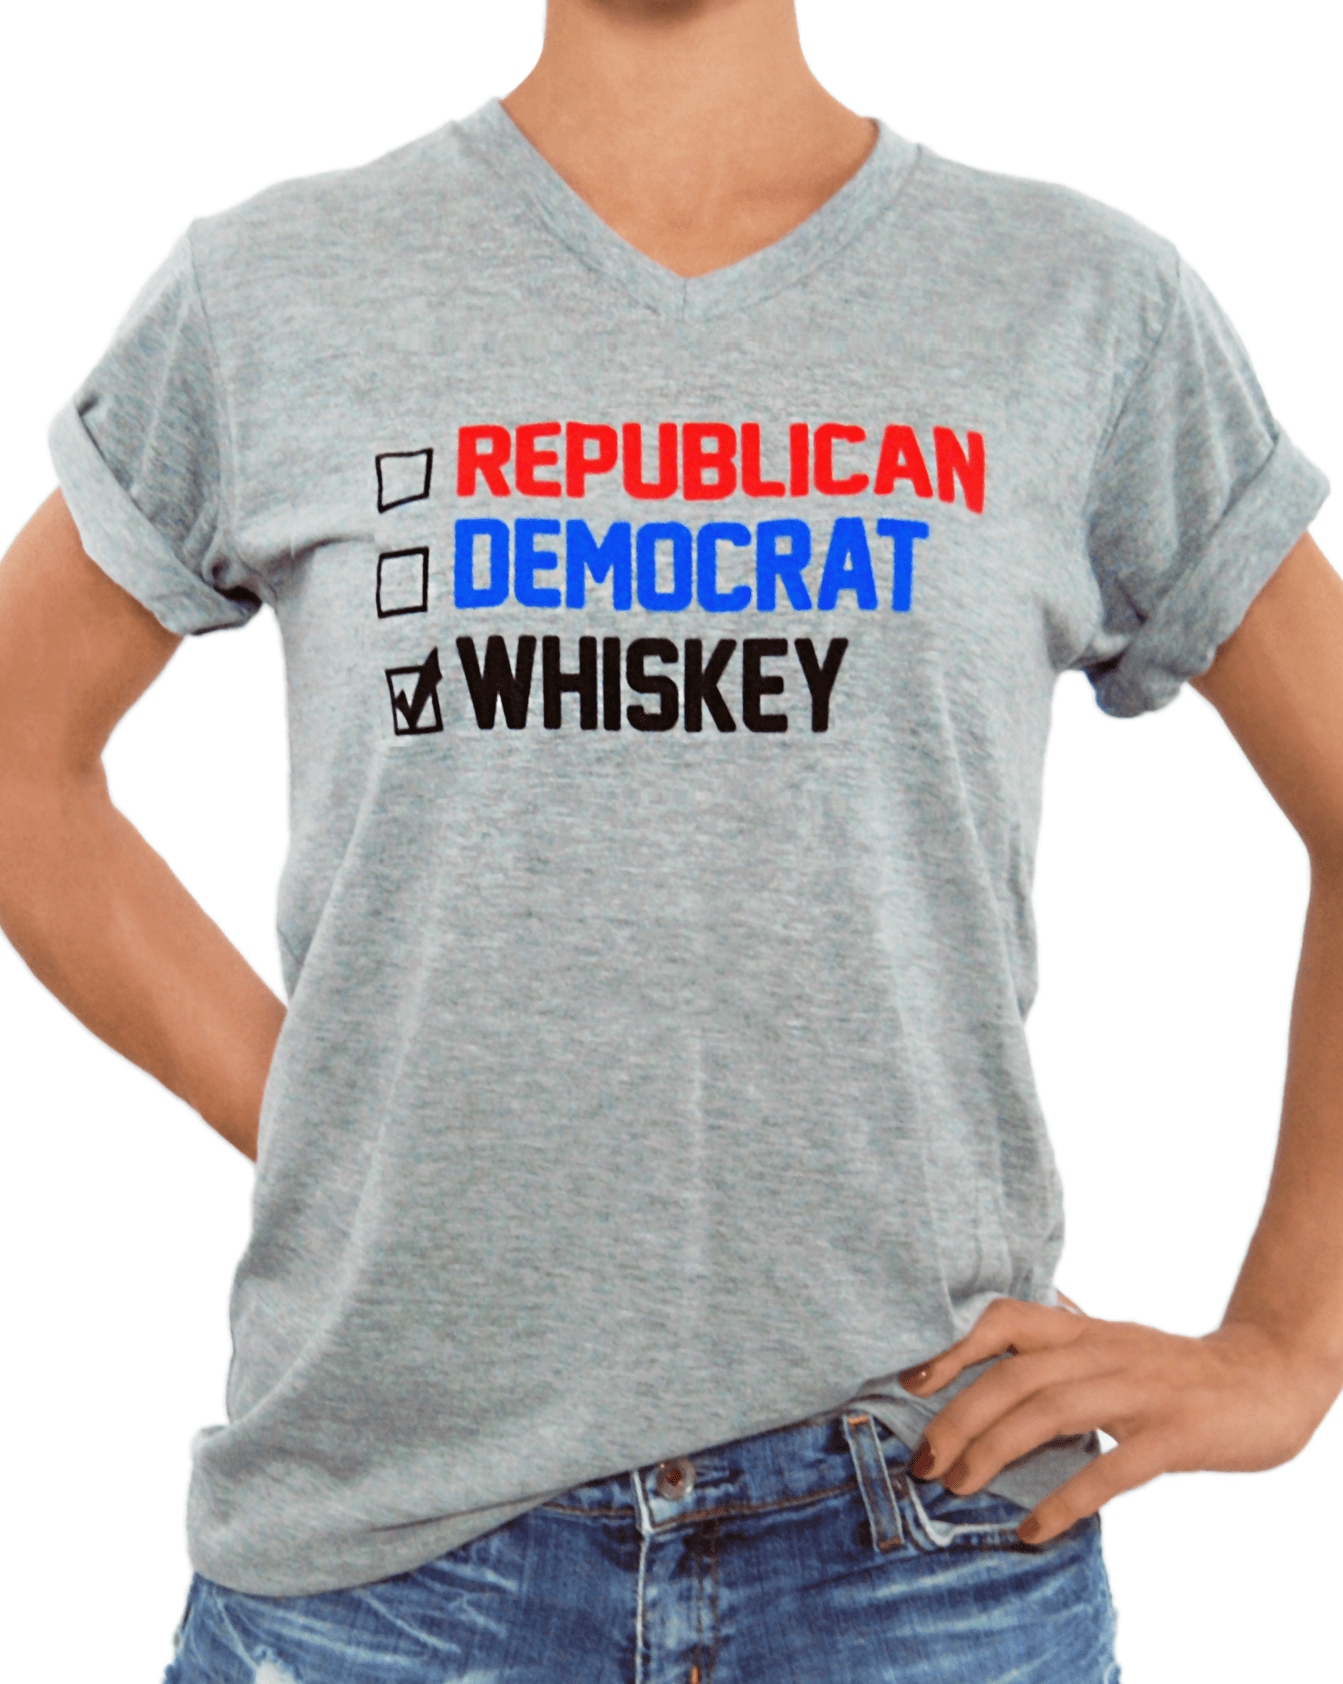 VOTE Whiskey - Unisex V-Neck Crew - Grey - Whiskey Island Clothing